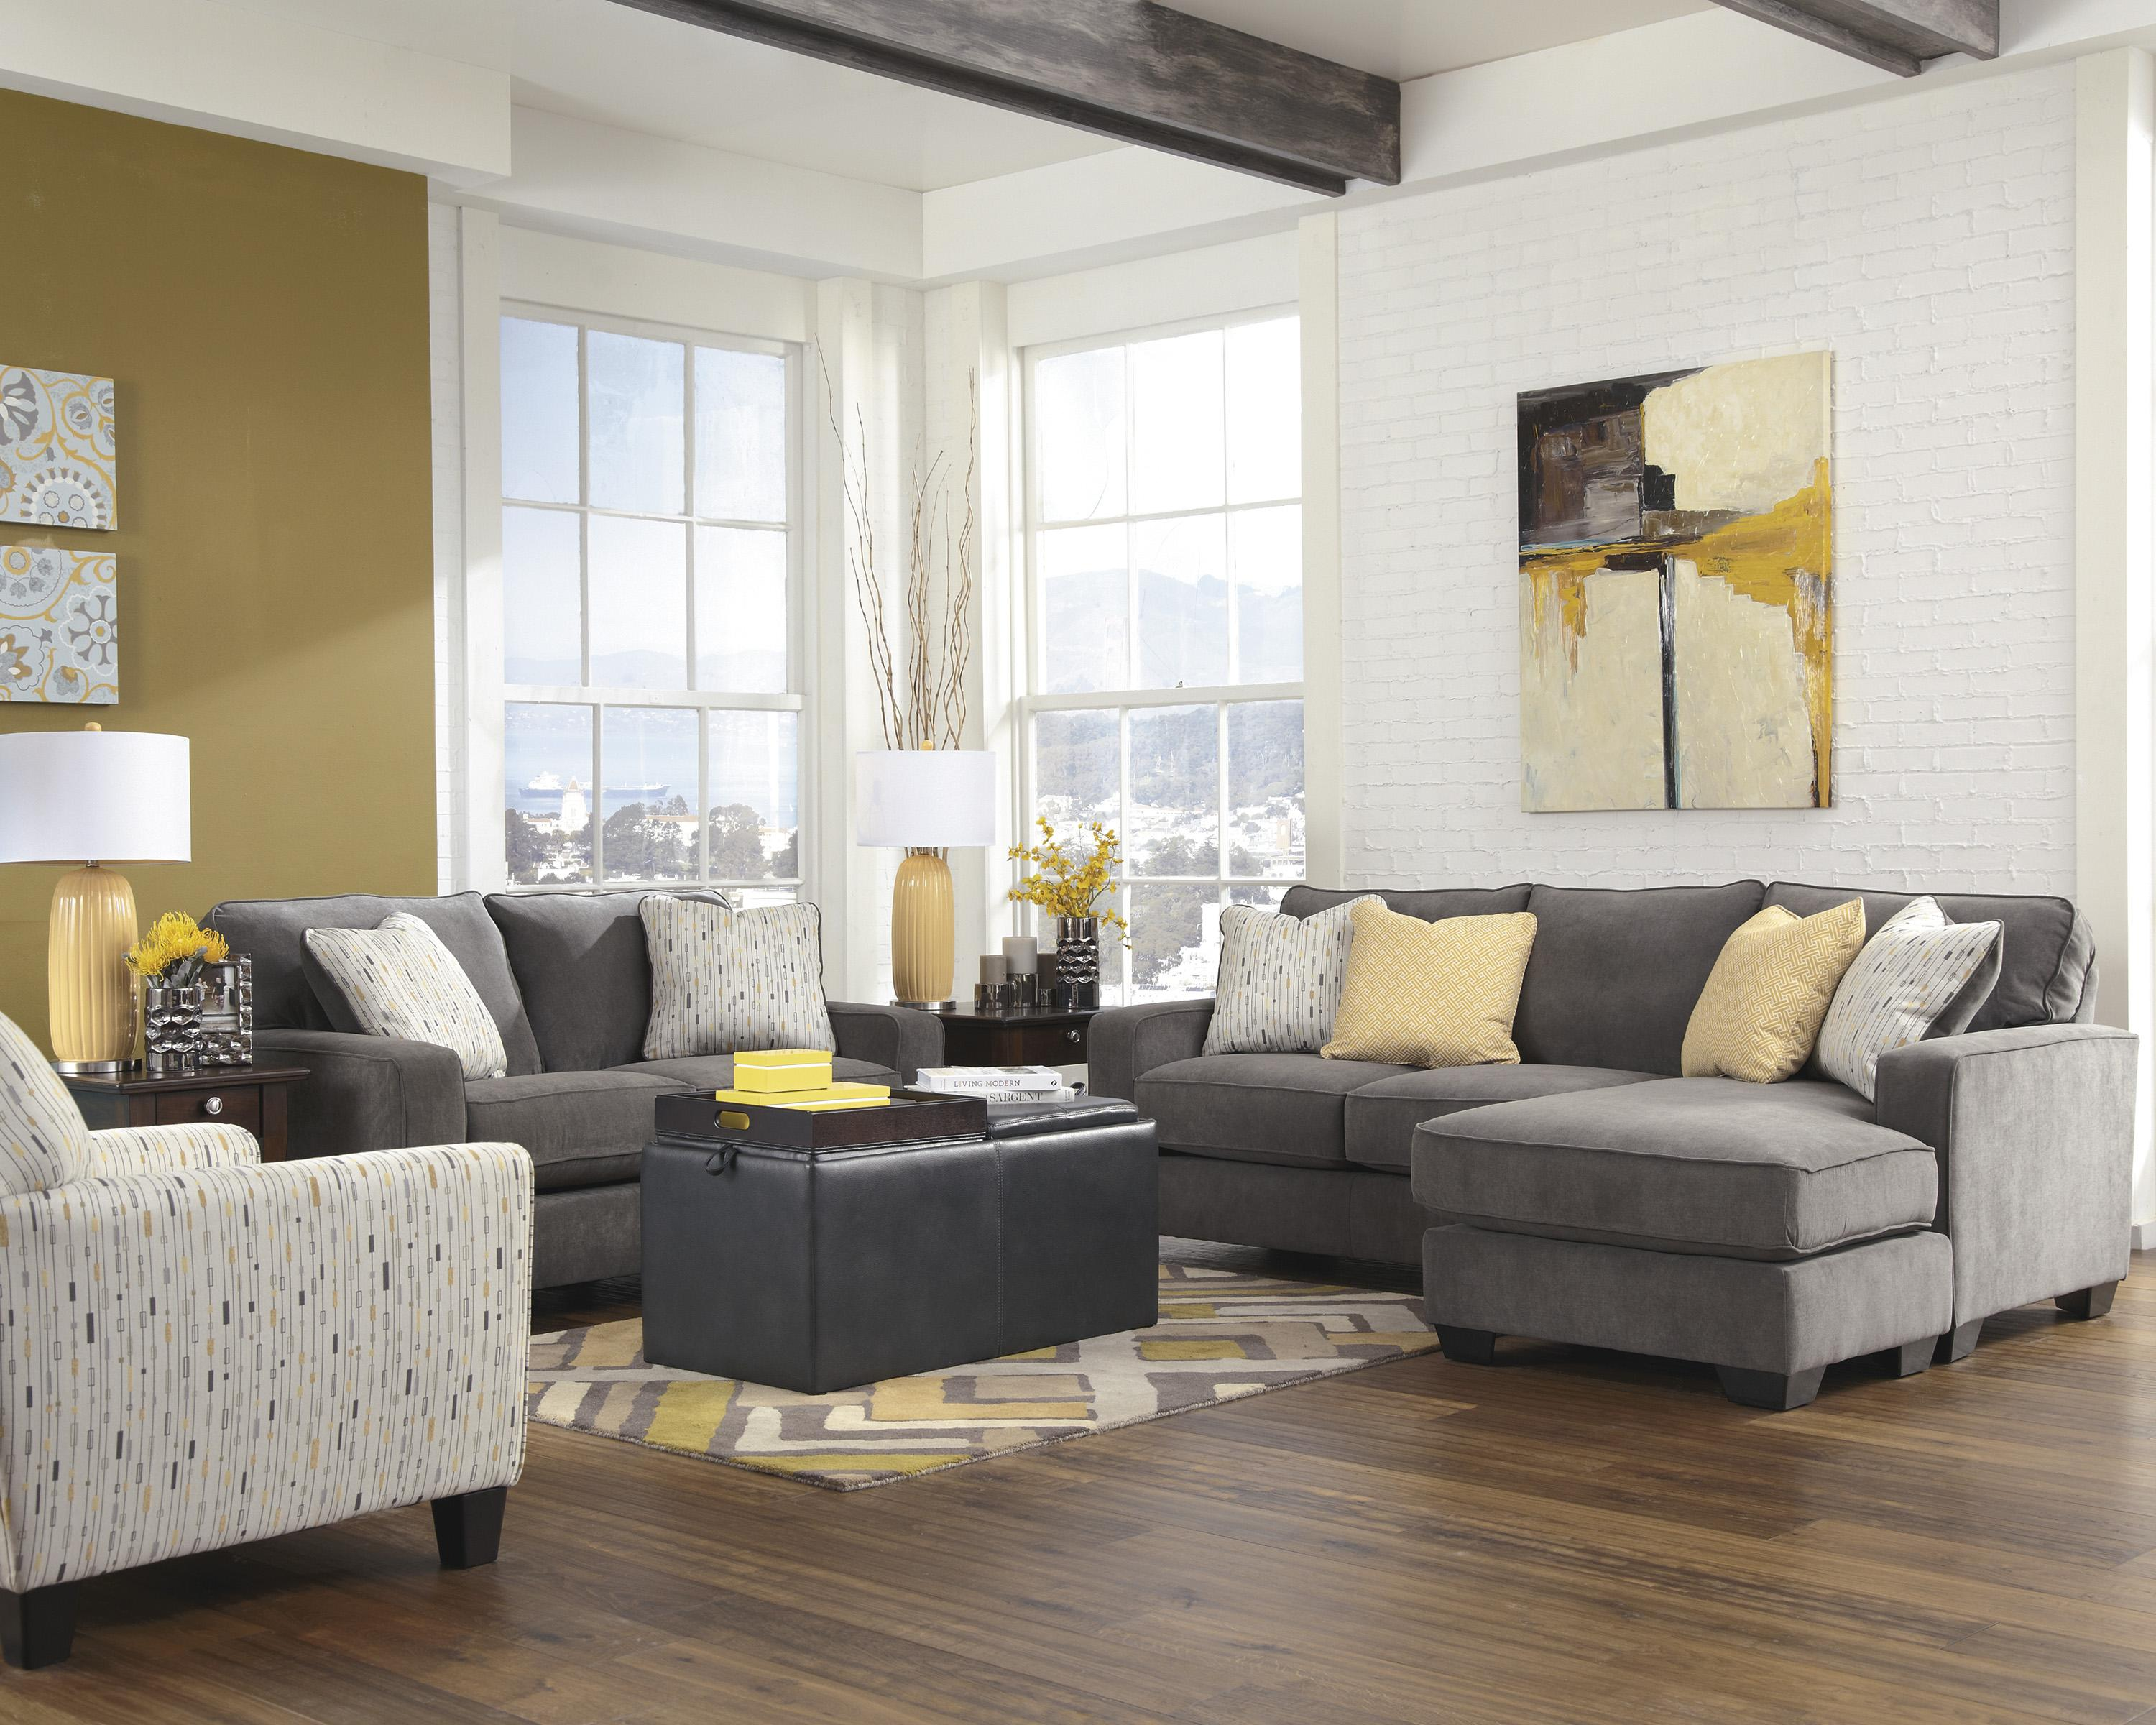 Signature Design by Ashley Hodan - Marble Stationary Living Room Group - Item Number: 79700 Living Room Group 4